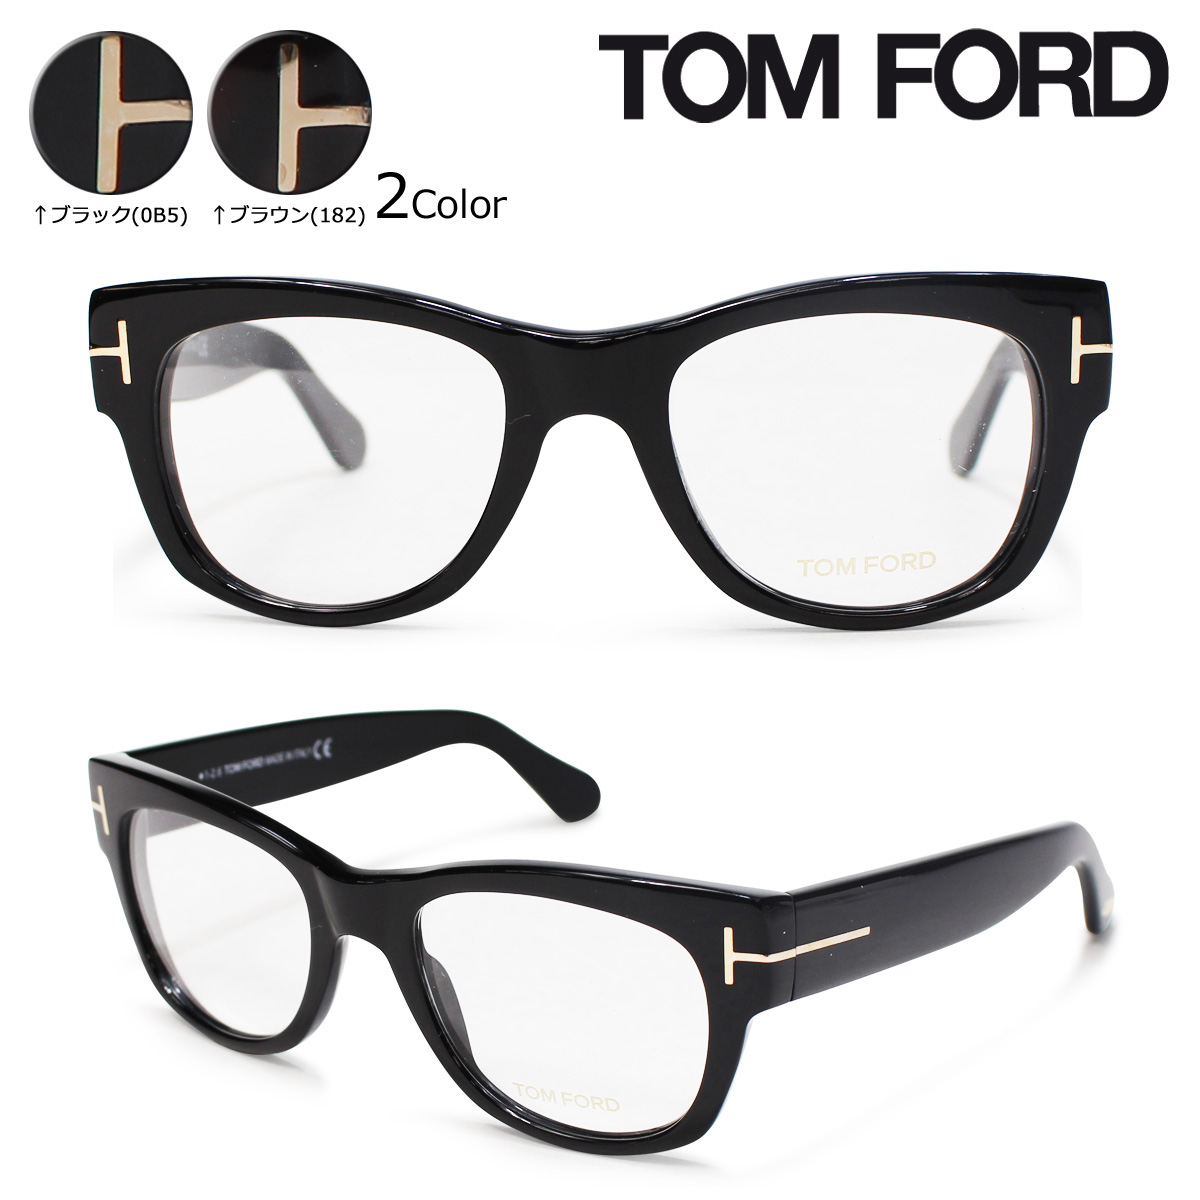 714f5372005b Whats up Sports  Product made in Tom Ford glasses TOM FORD men gap ...